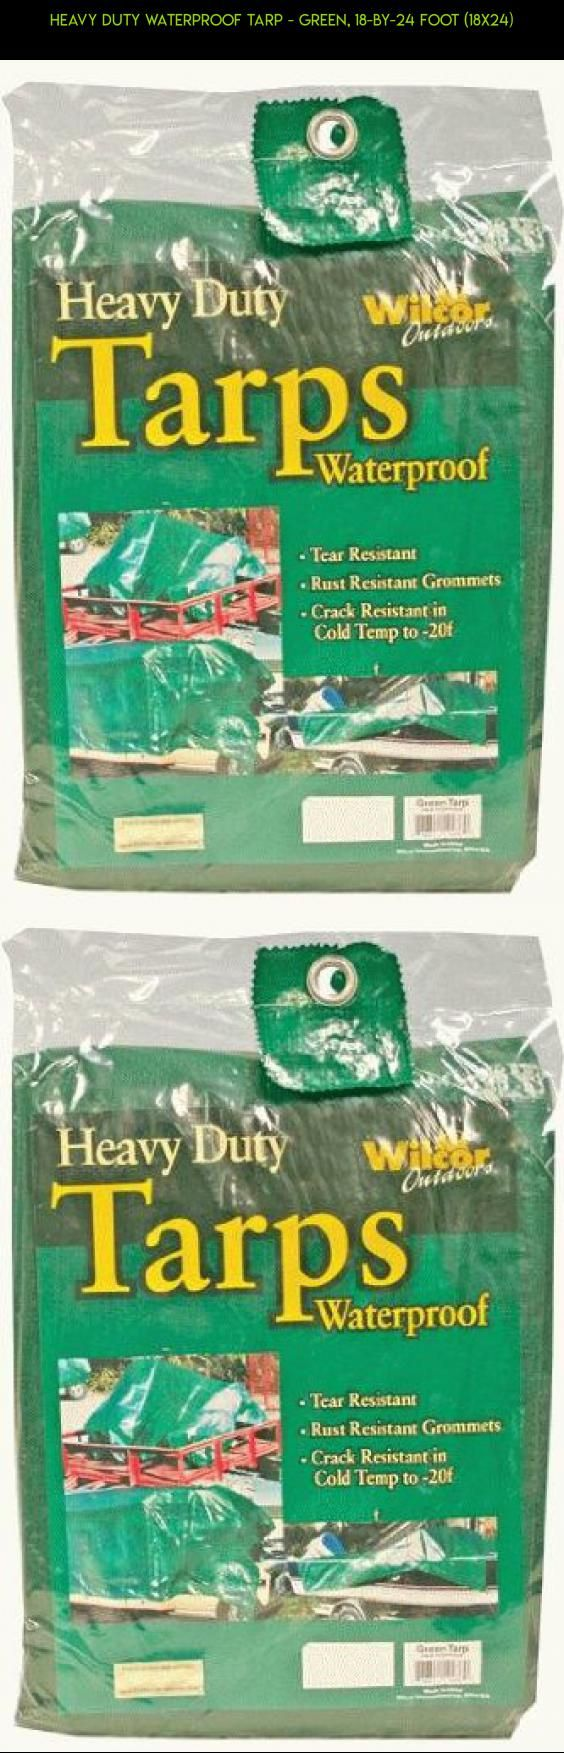 Heavy Duty Waterproof Tarp - Green, 18-by-24 Foot (18x24) #furniture #shopping #camera #technology #drone #racing #parts #fpv #gadgets #kit #patio #products #tech #plans #tarp